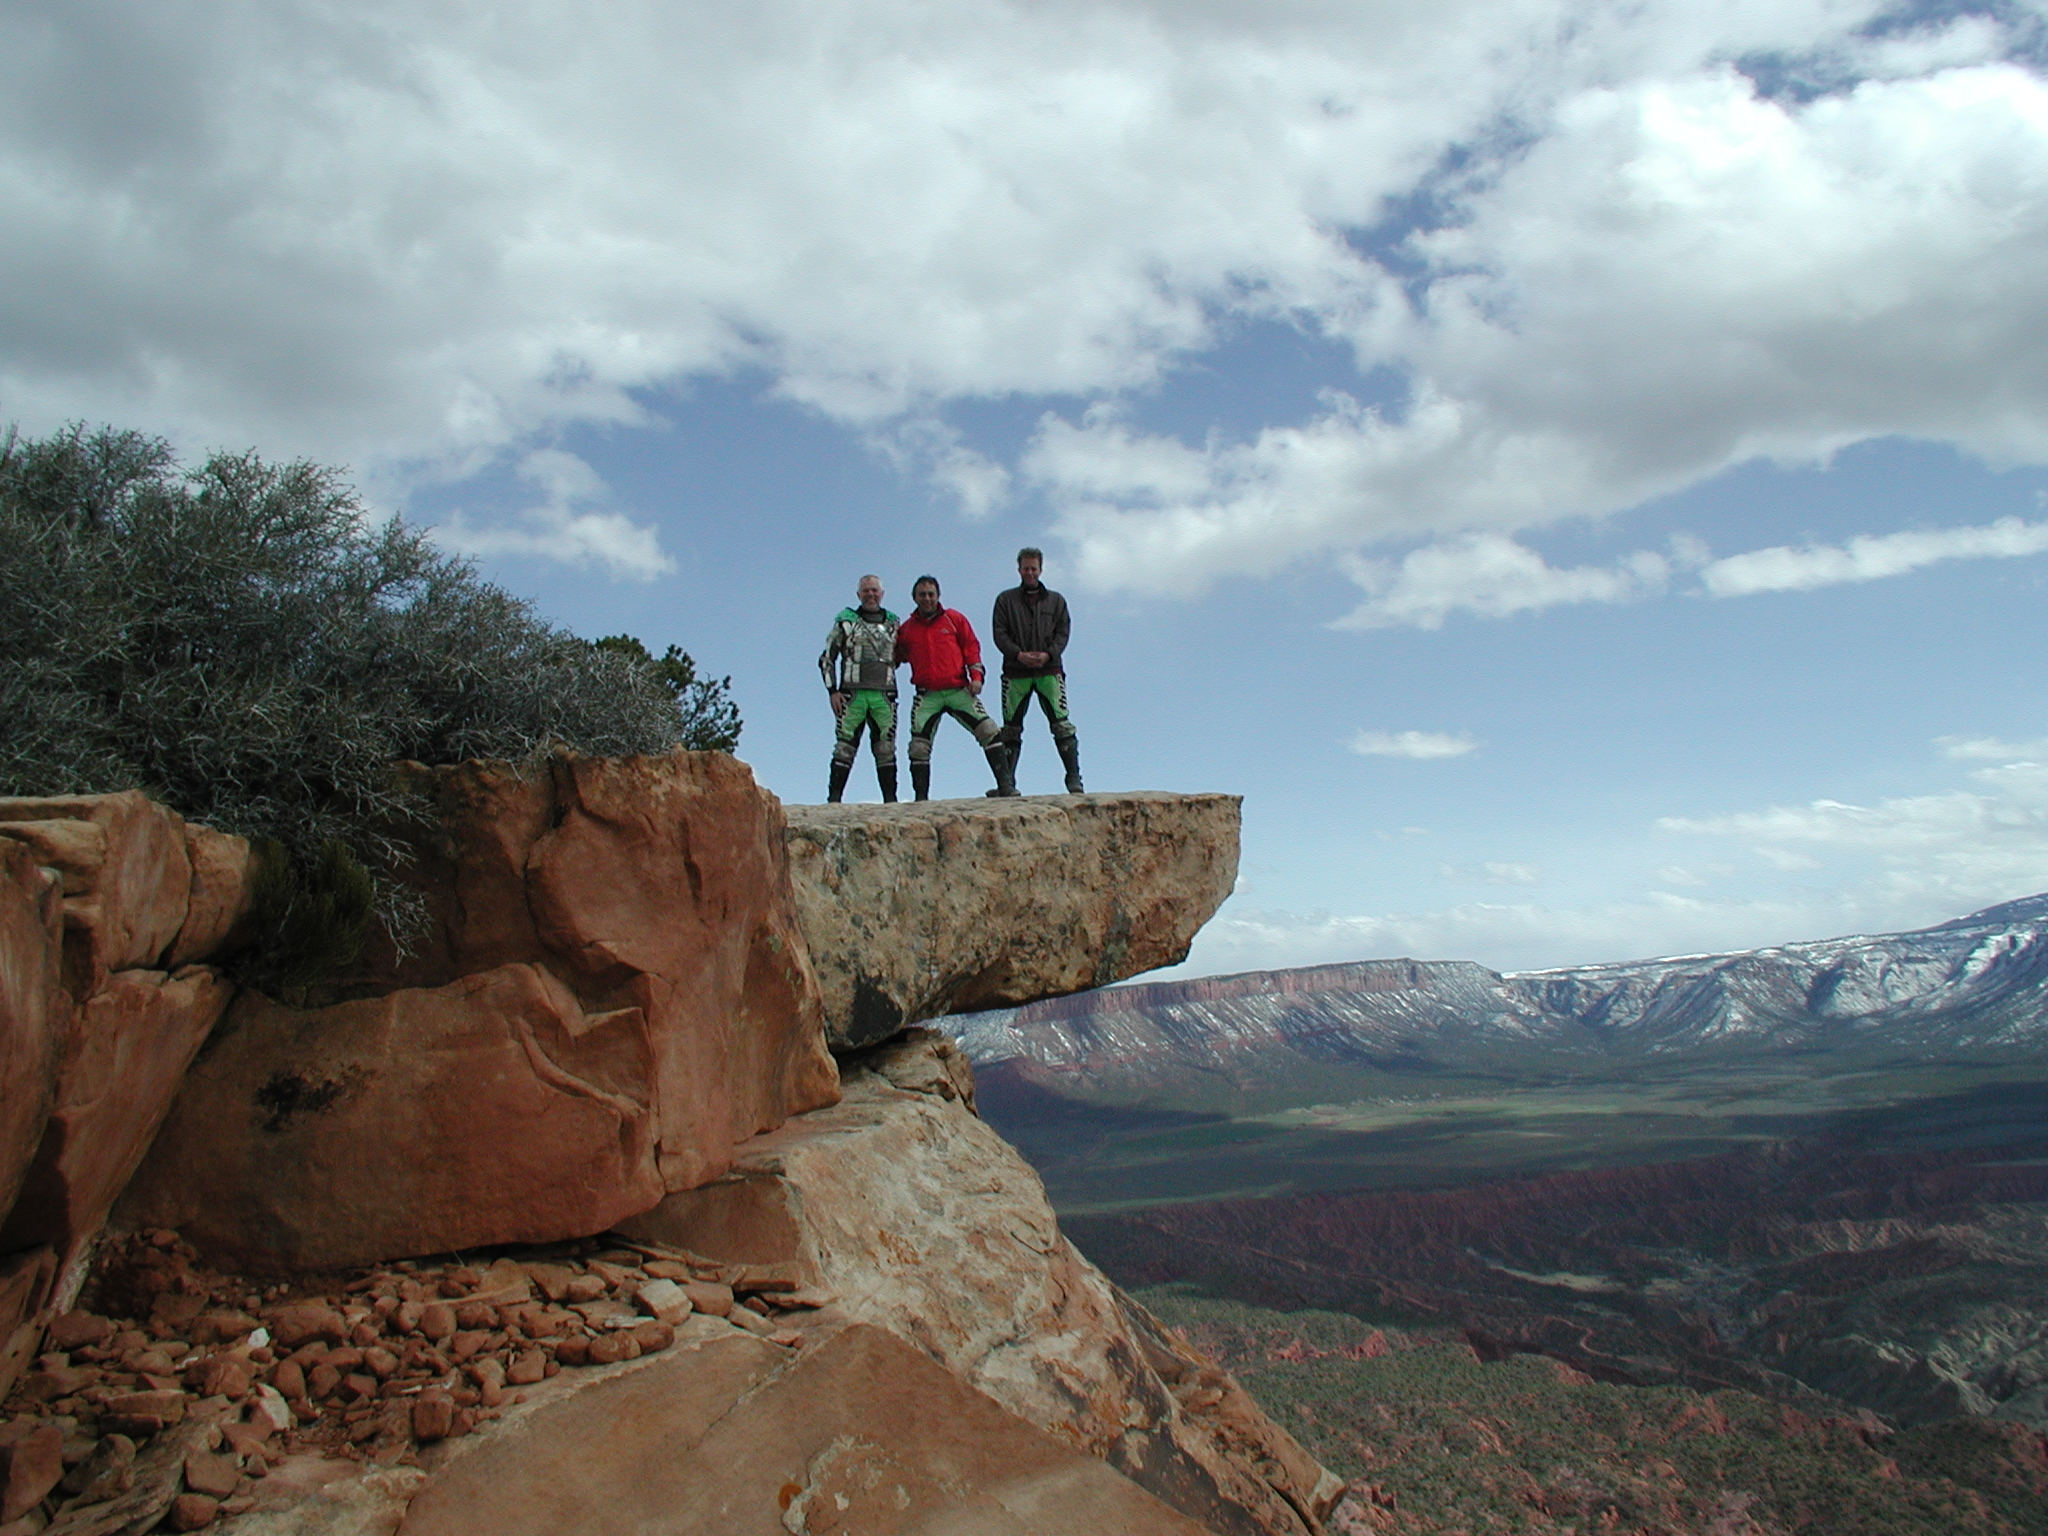 3 men standing on a rock